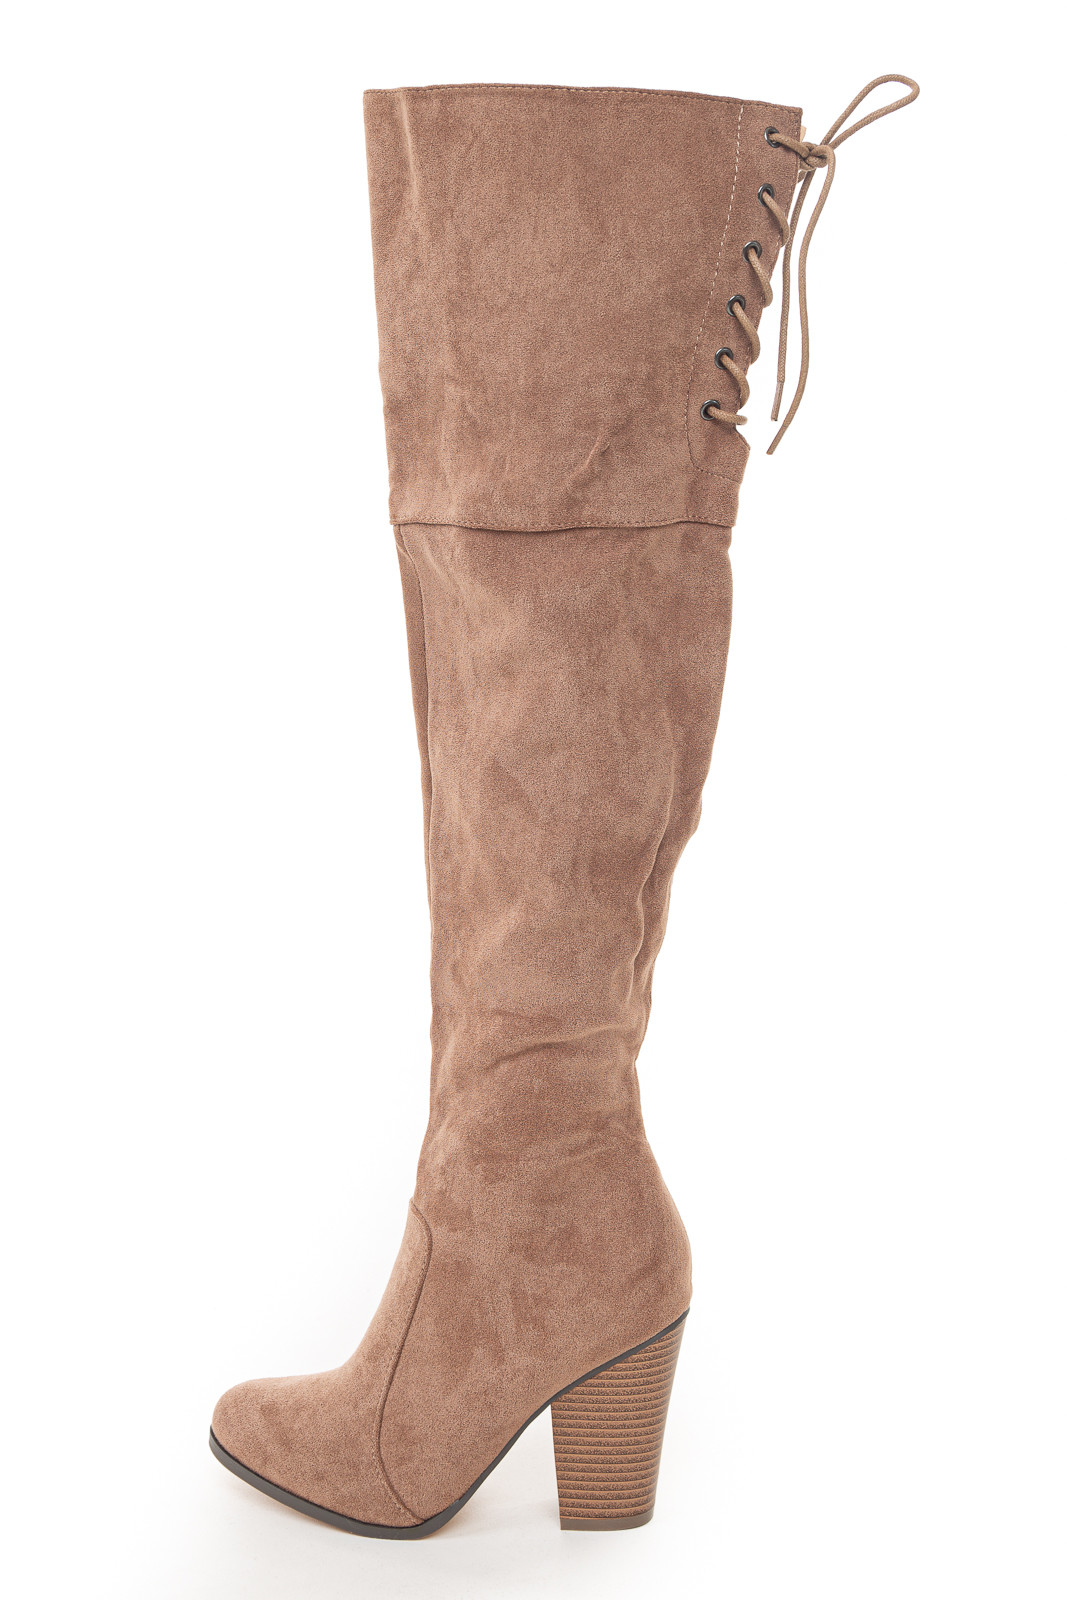 Taupe Over the Knee High Boots with Lace Up Back Detail